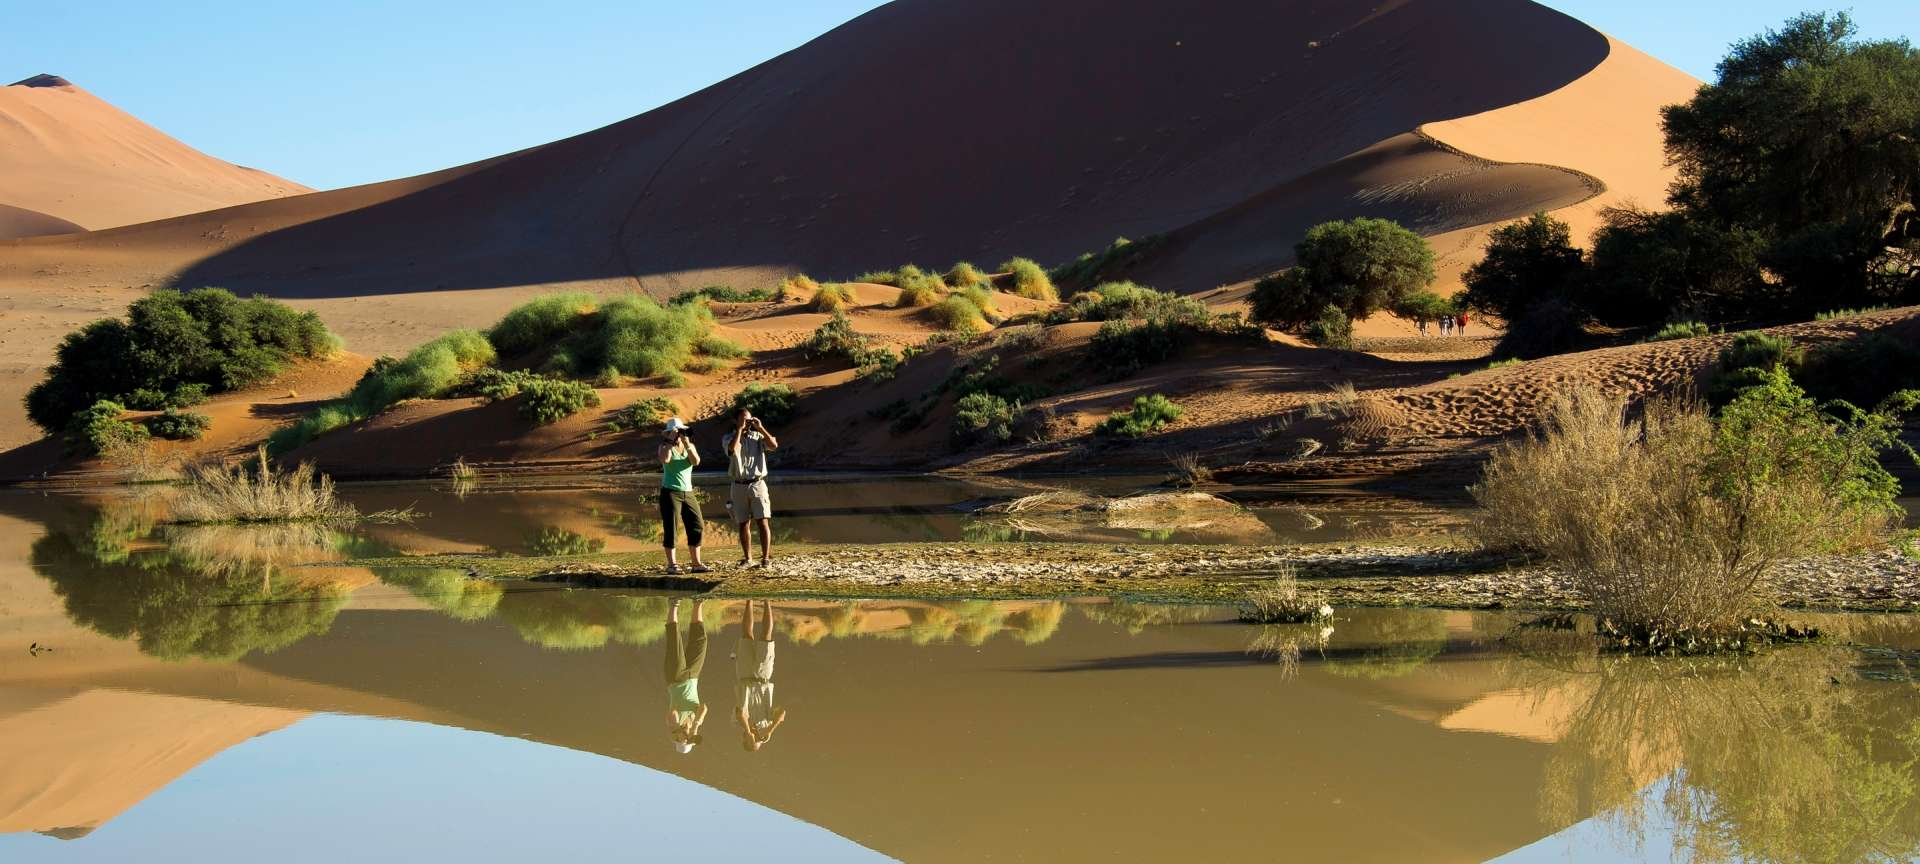 Sossusvlei - Africa Wildlife Safaris